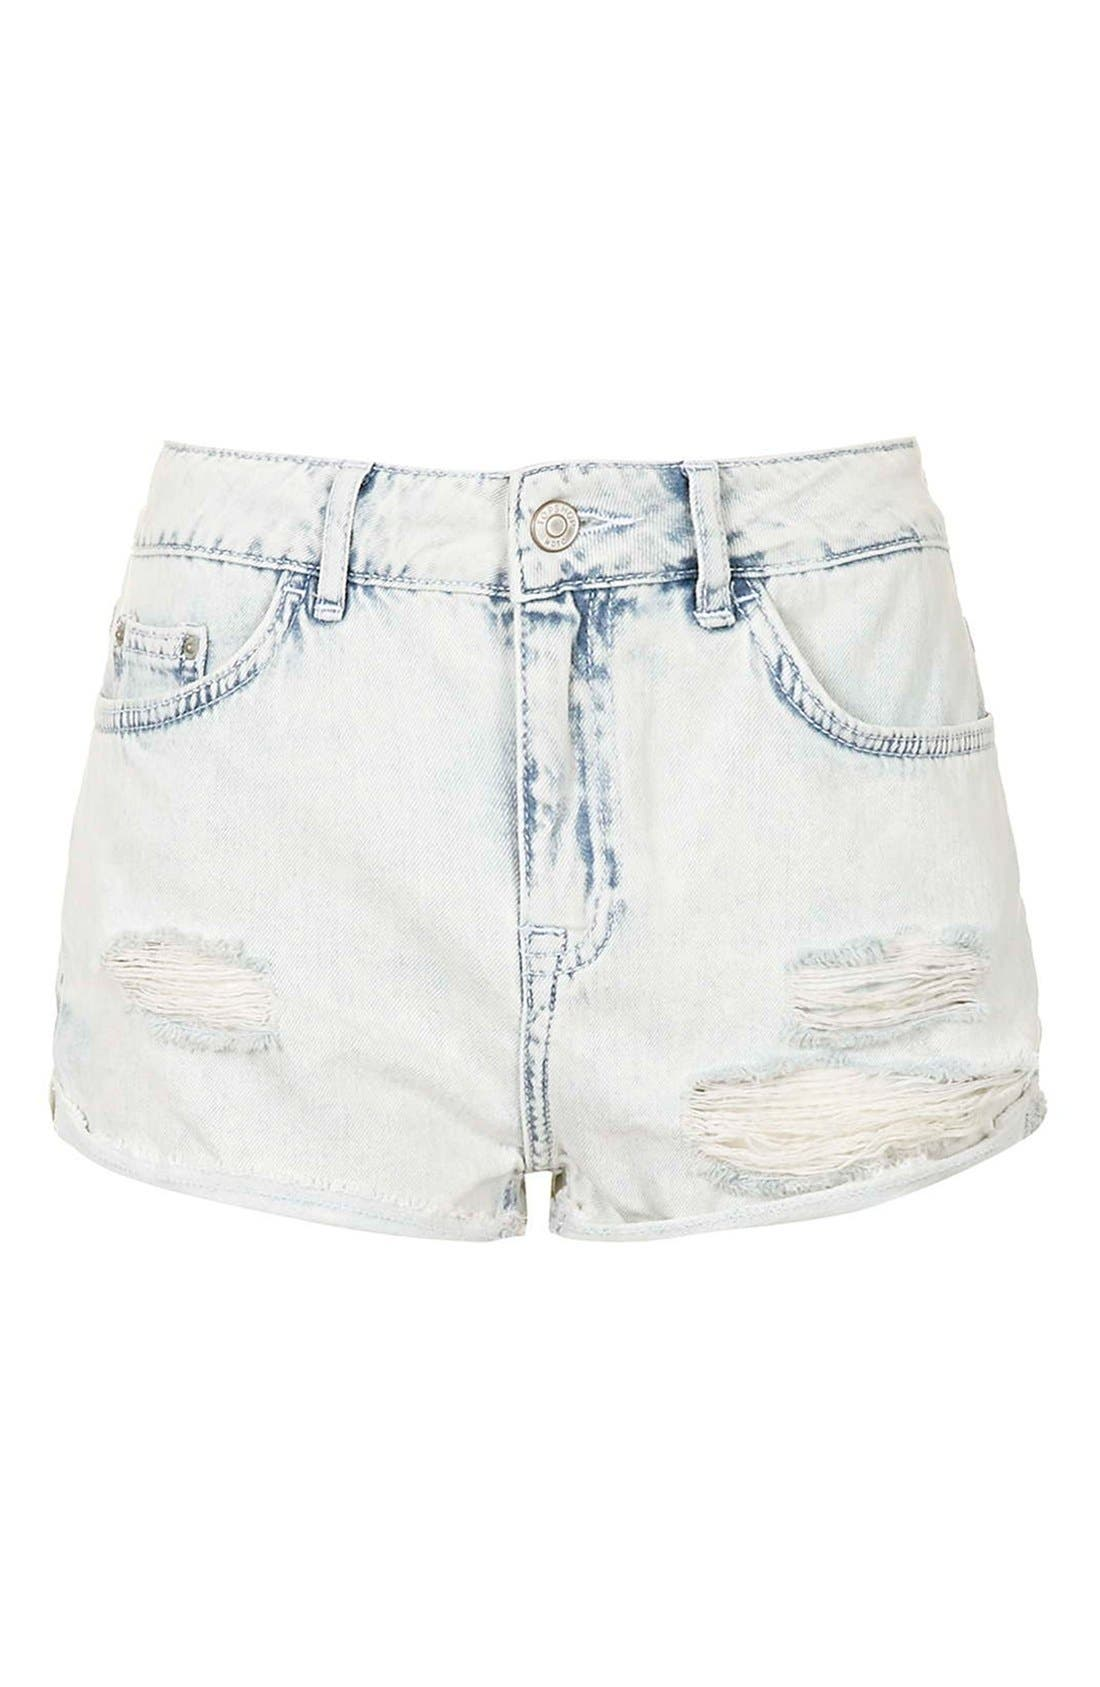 Alternate Image 3  - Topshop Moto 'Hallie' Bleach Cutoff Shorts (Light Denim) (Petite)